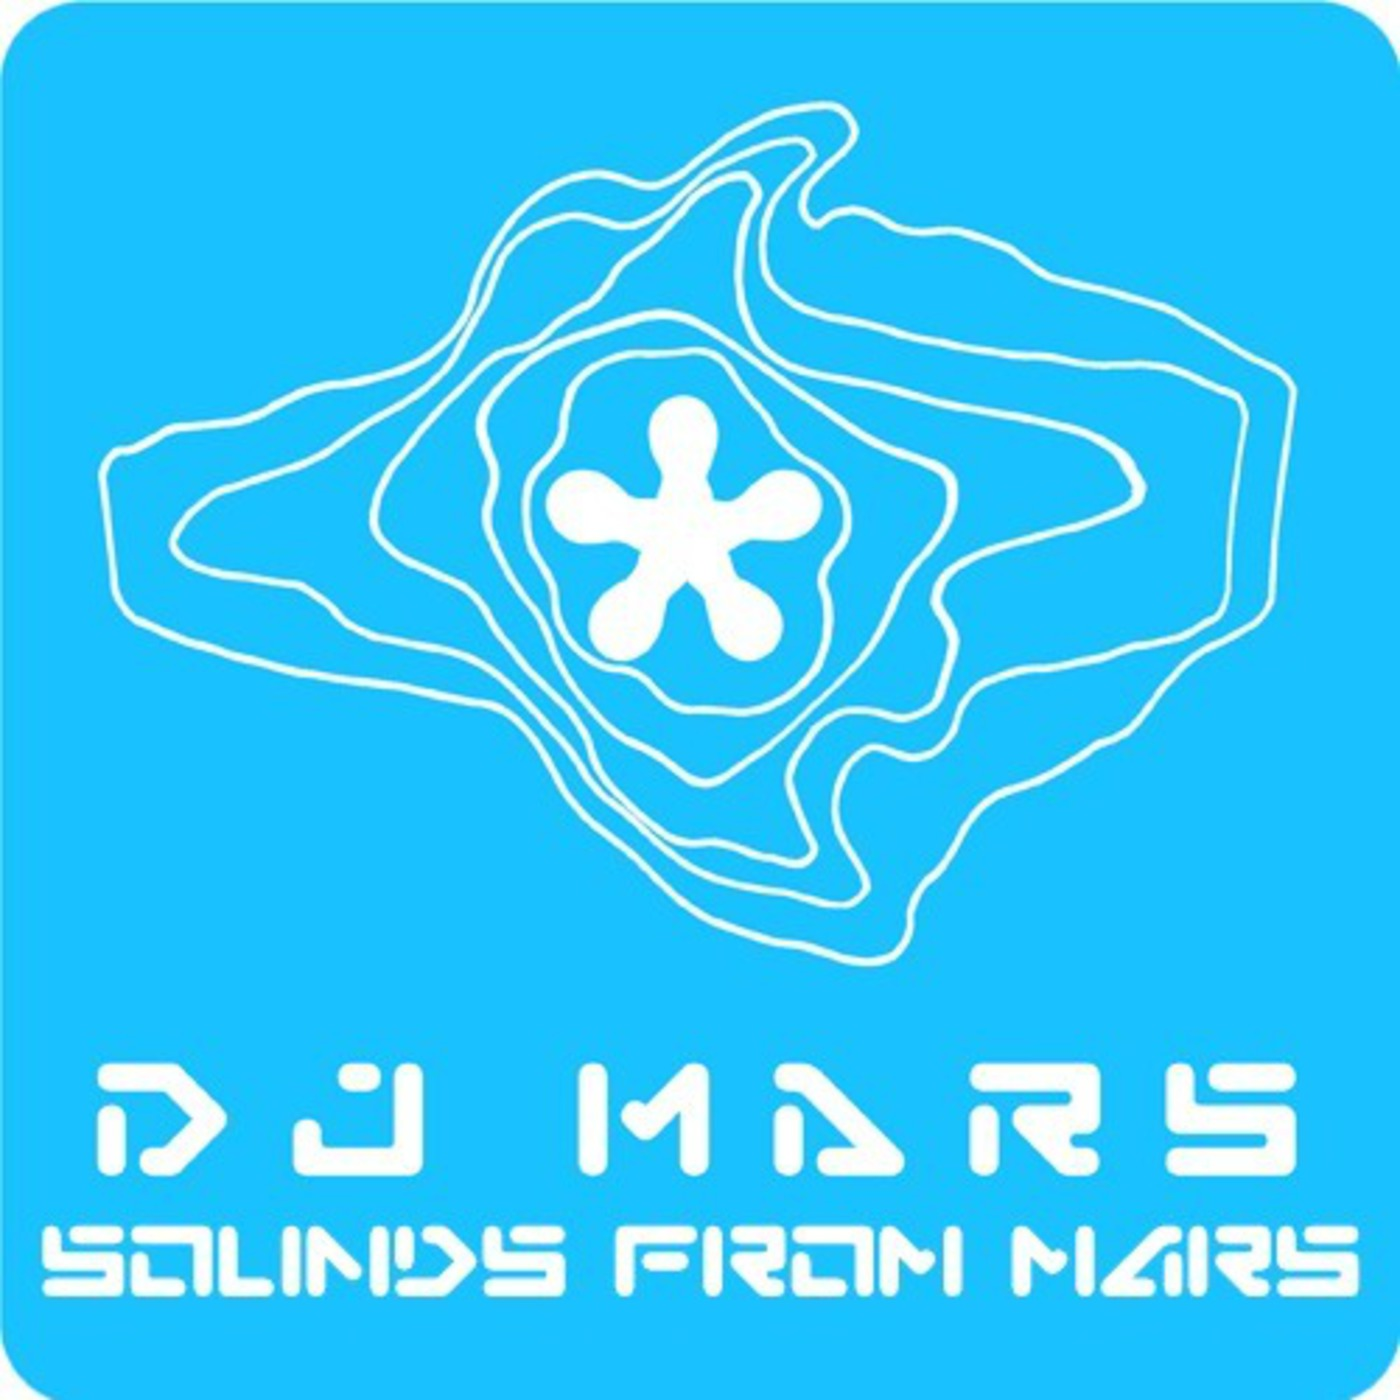 Sounds from Mars podcast